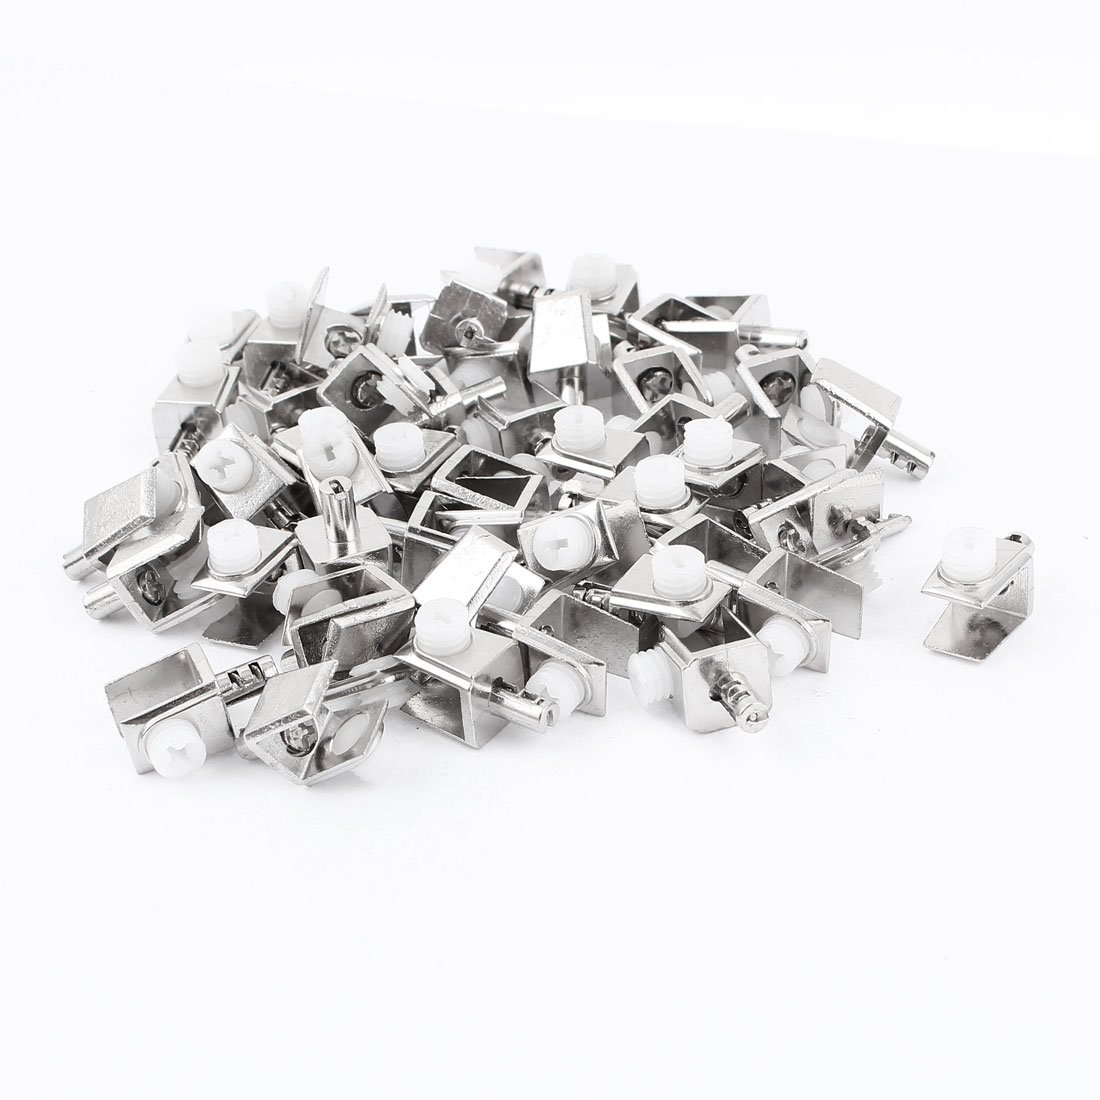 50 Pcs Wall Mounted 0.16''-0.31'' Thick Screw Adjustable Glass Clips